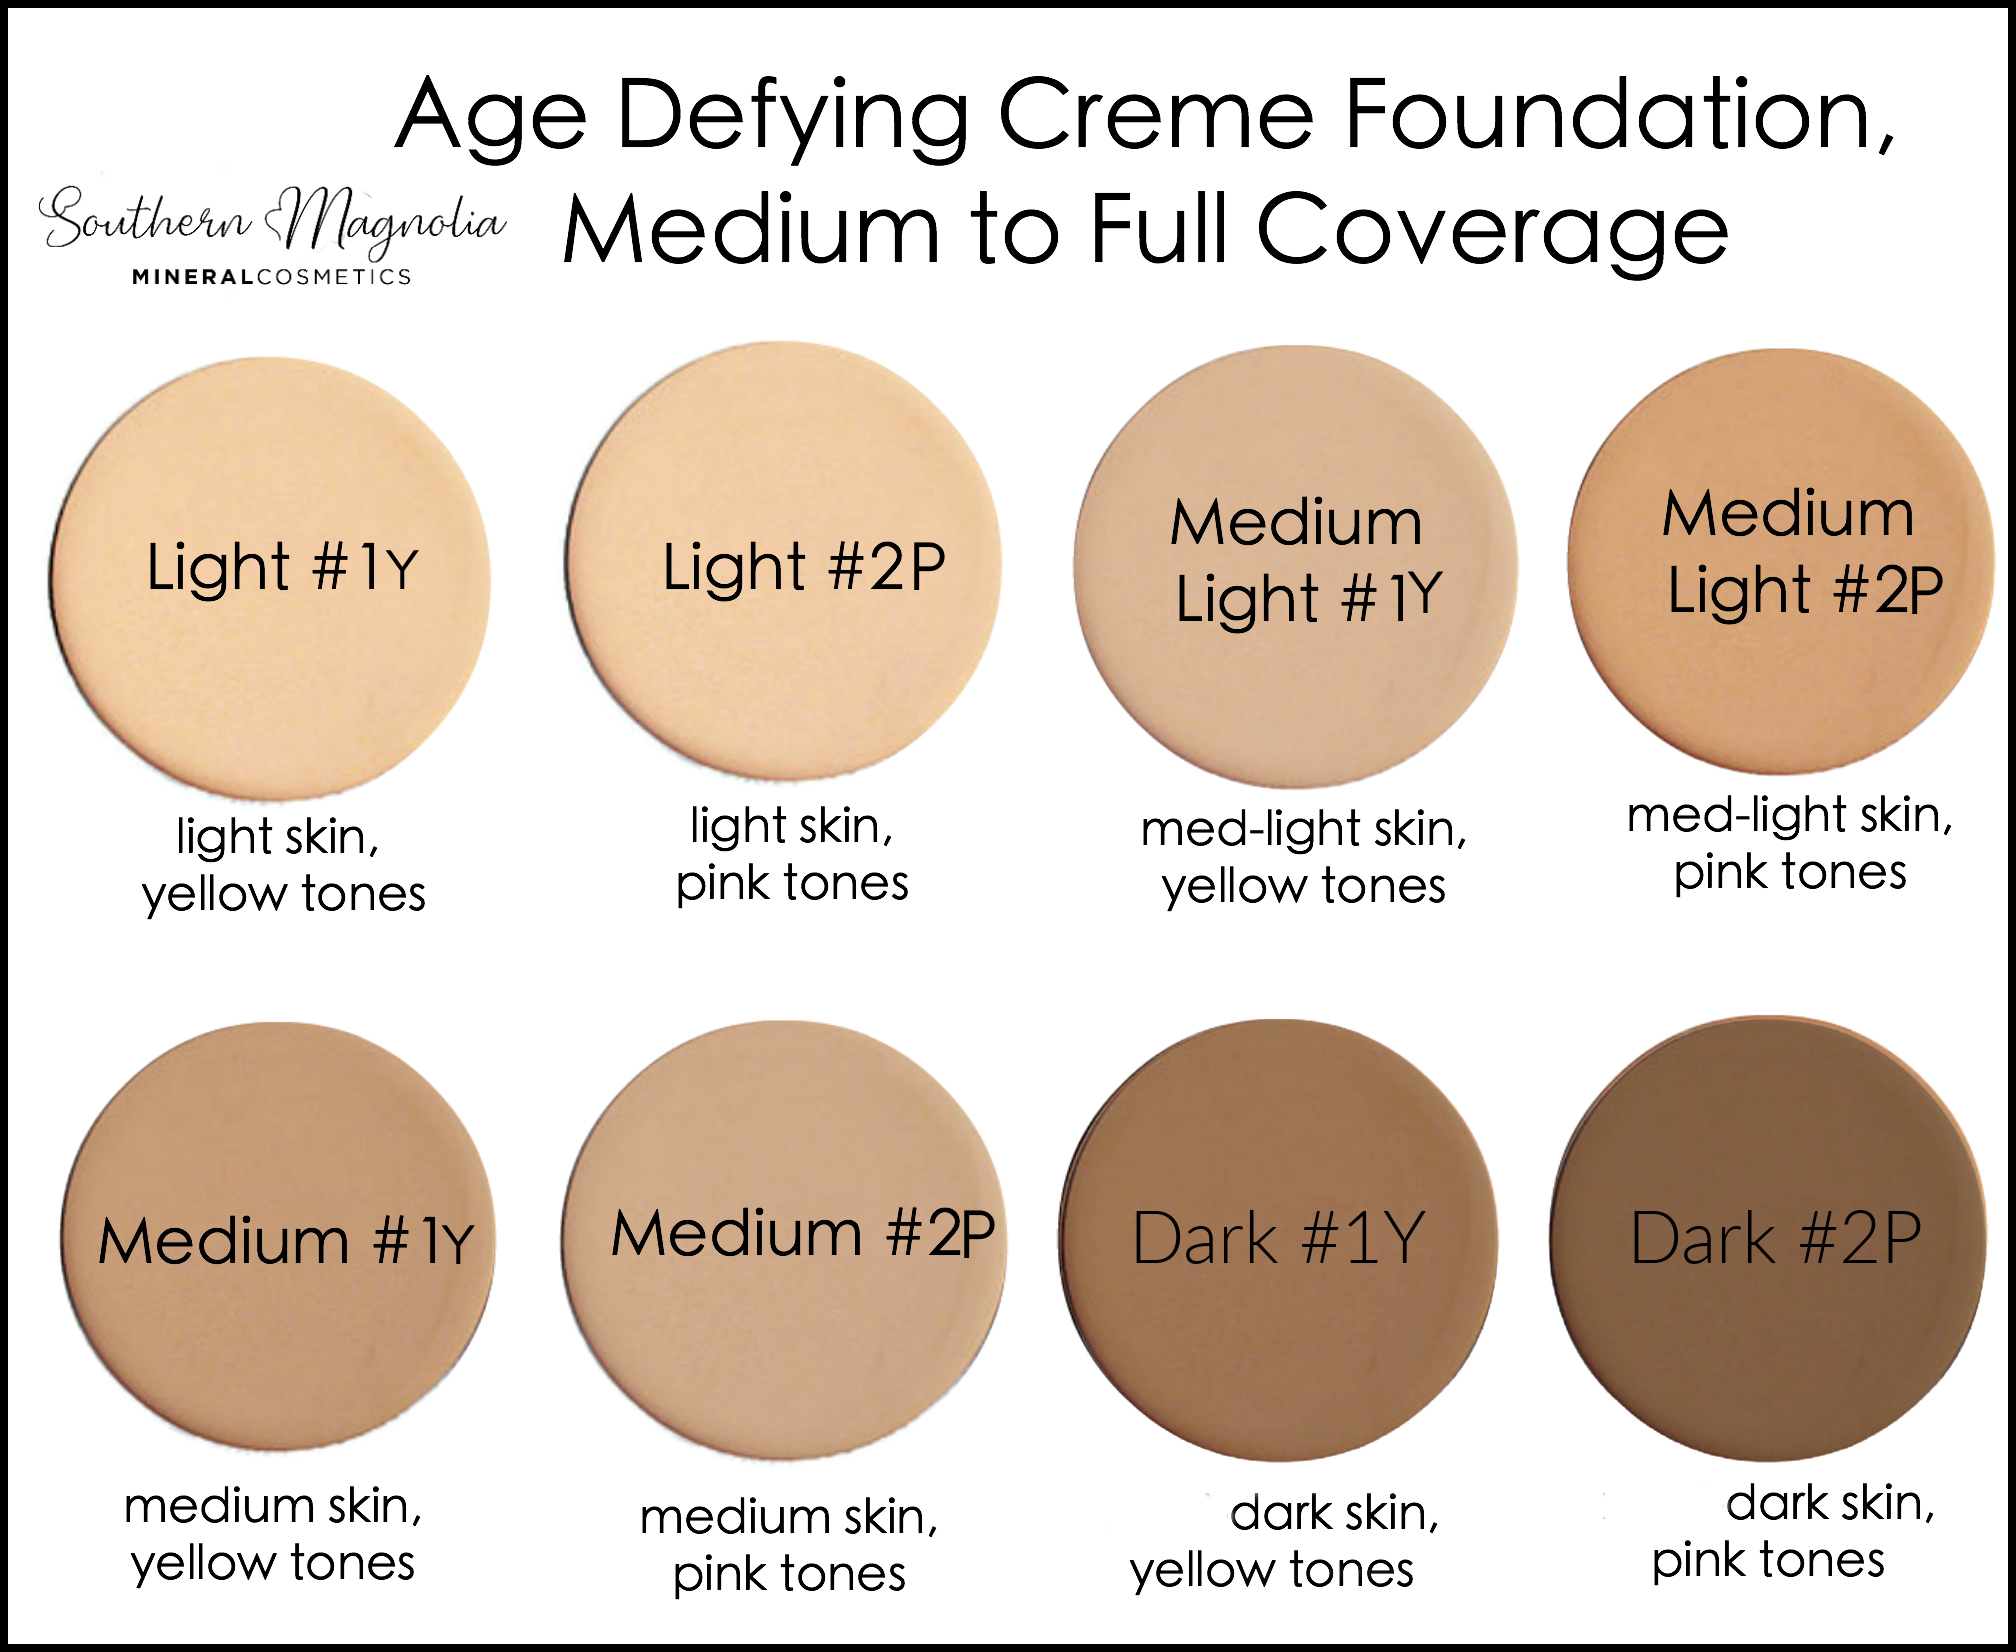 1-age-defying-creme-foundation-color-chart.png